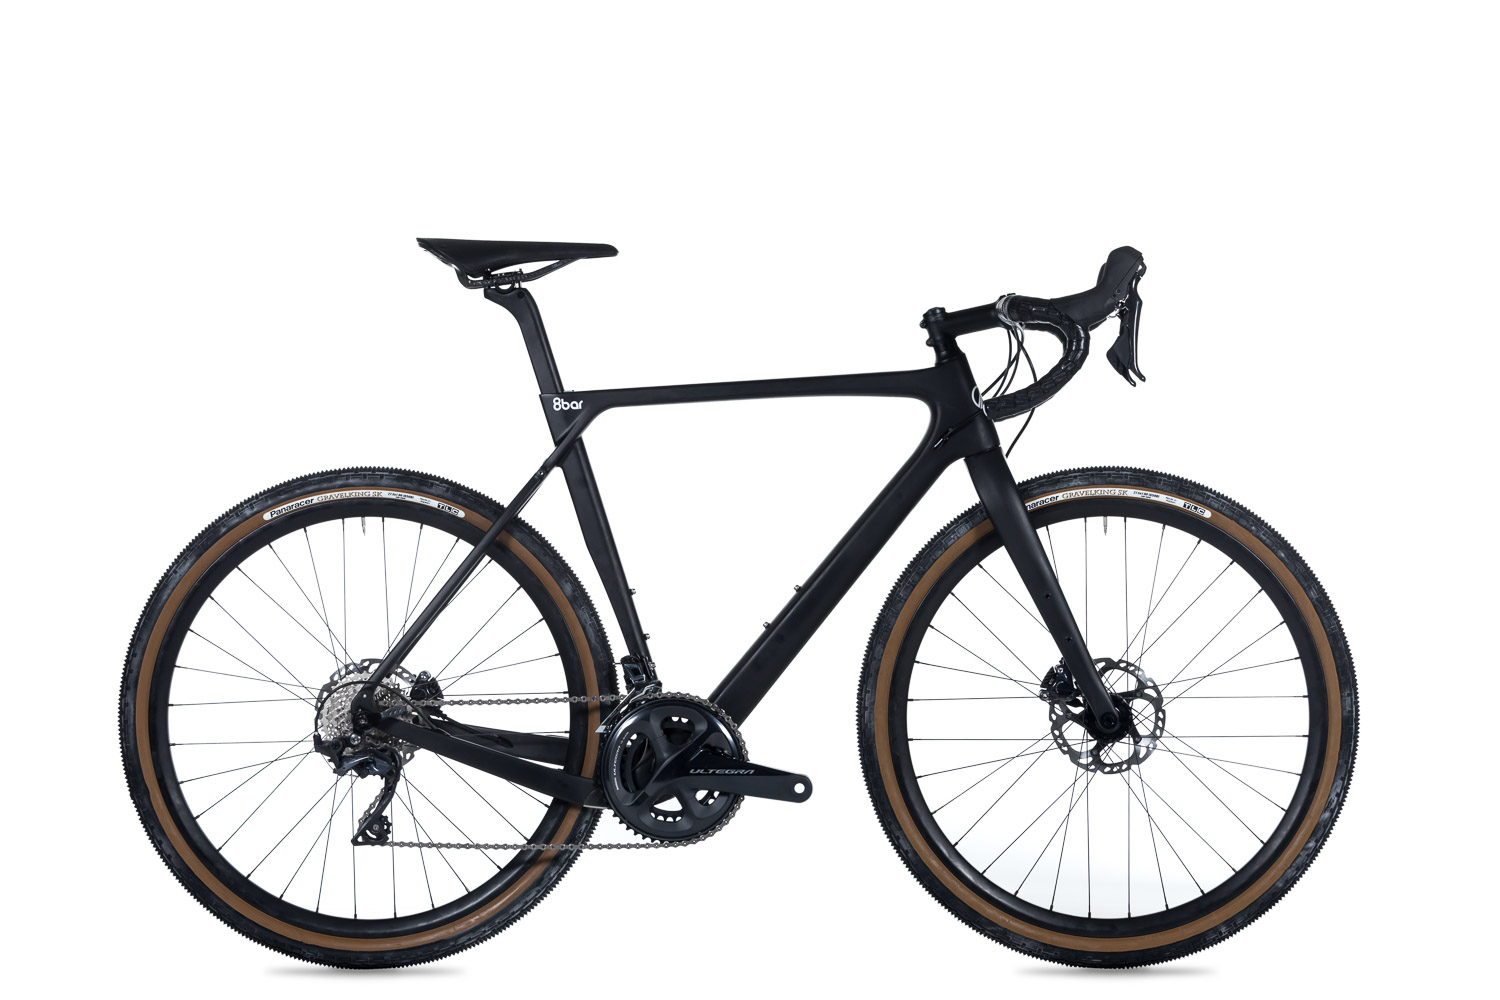 8bar complete bike grunewald carbon cx gravel black studio lr-1